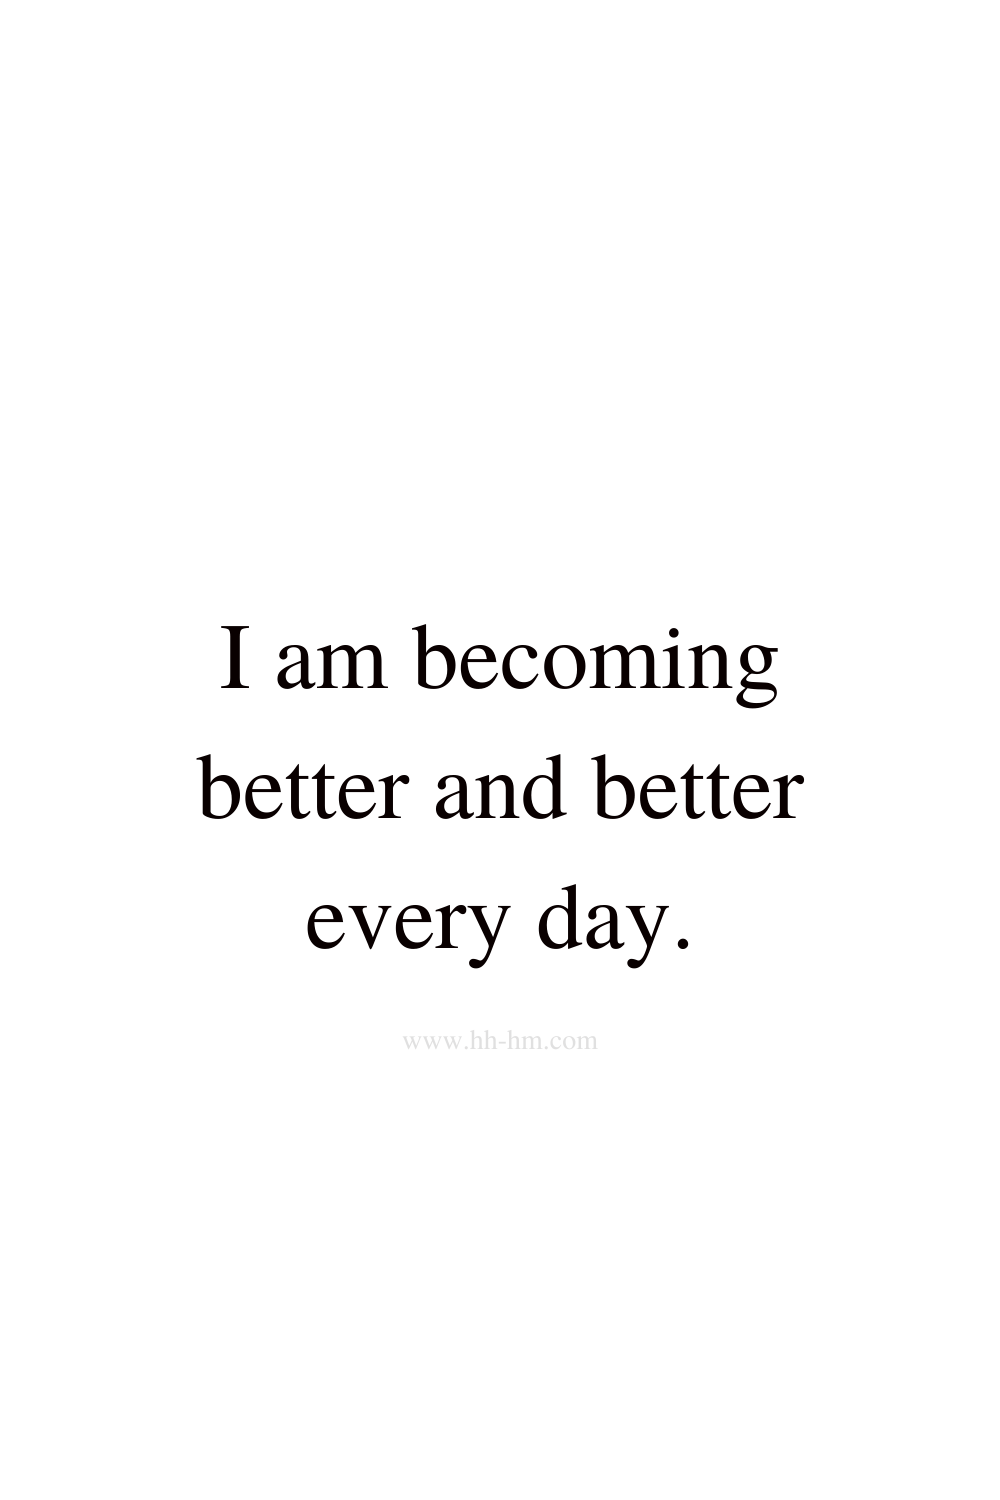 I am becoming better and better - self love and self confidence morning affirmations